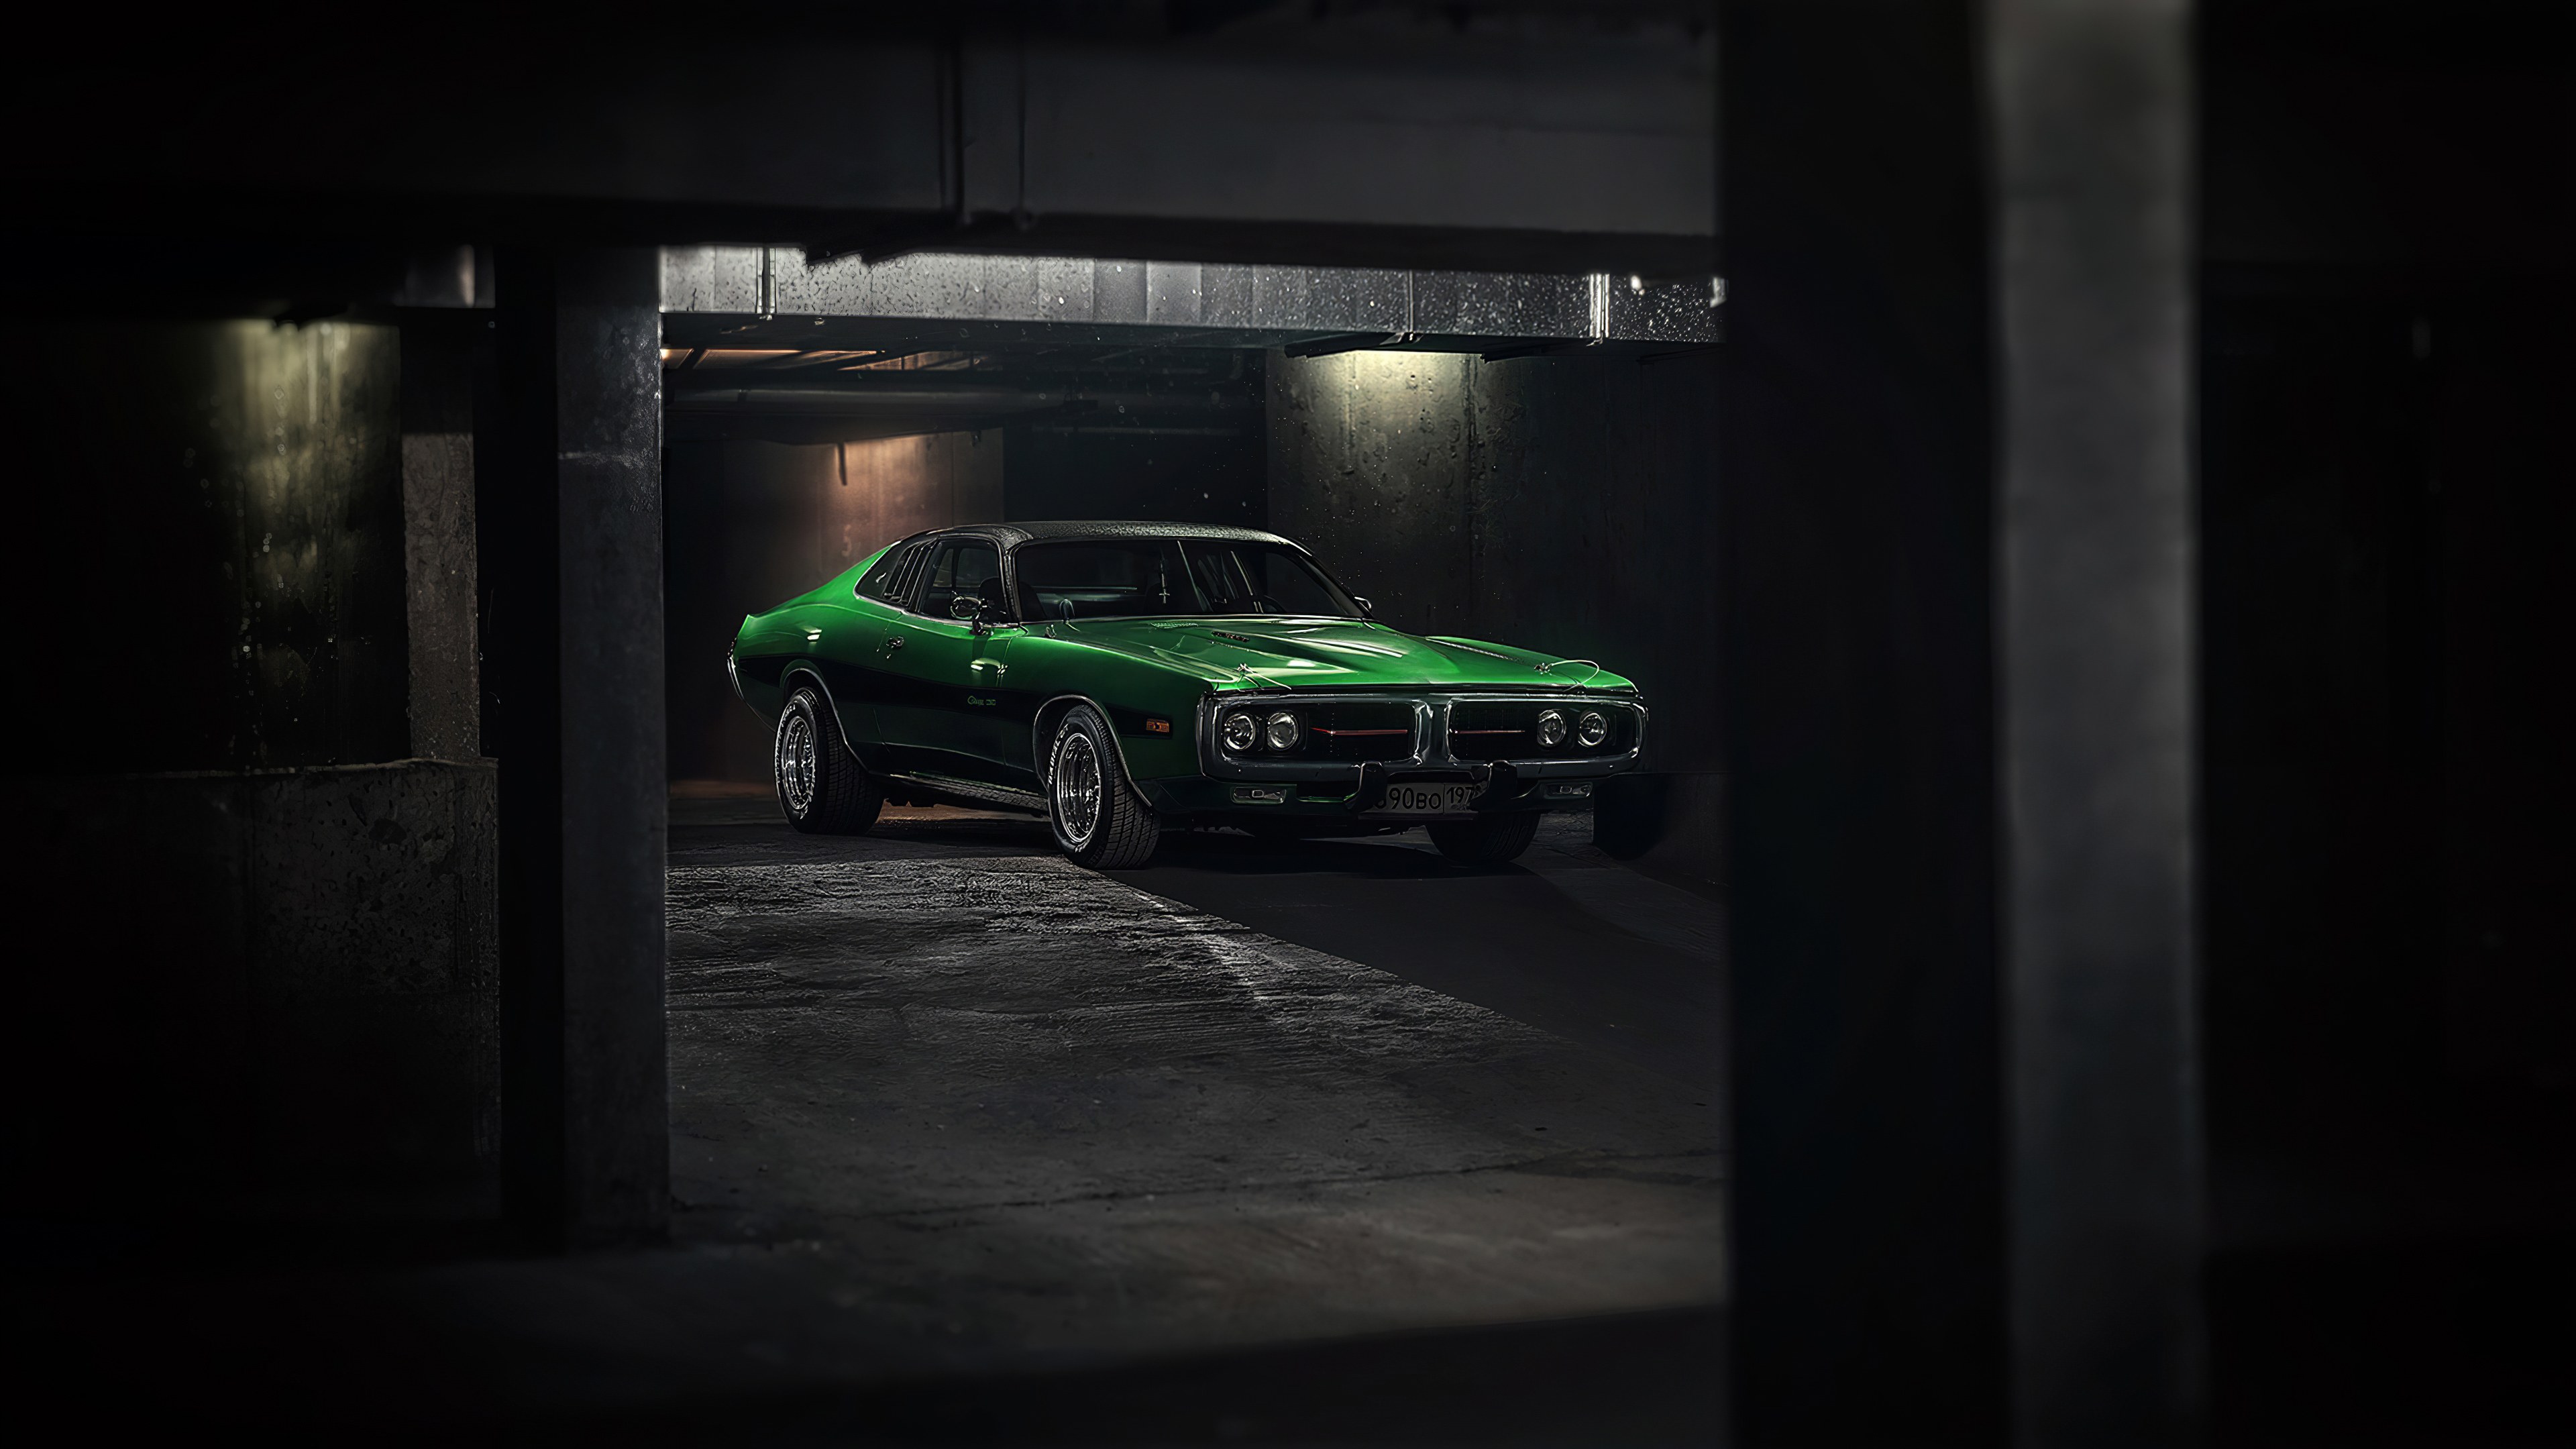 Dodge Charger Muscle Car 4k Hd Cars 4k Wallpapers Images Backgrounds Photos And Pictures